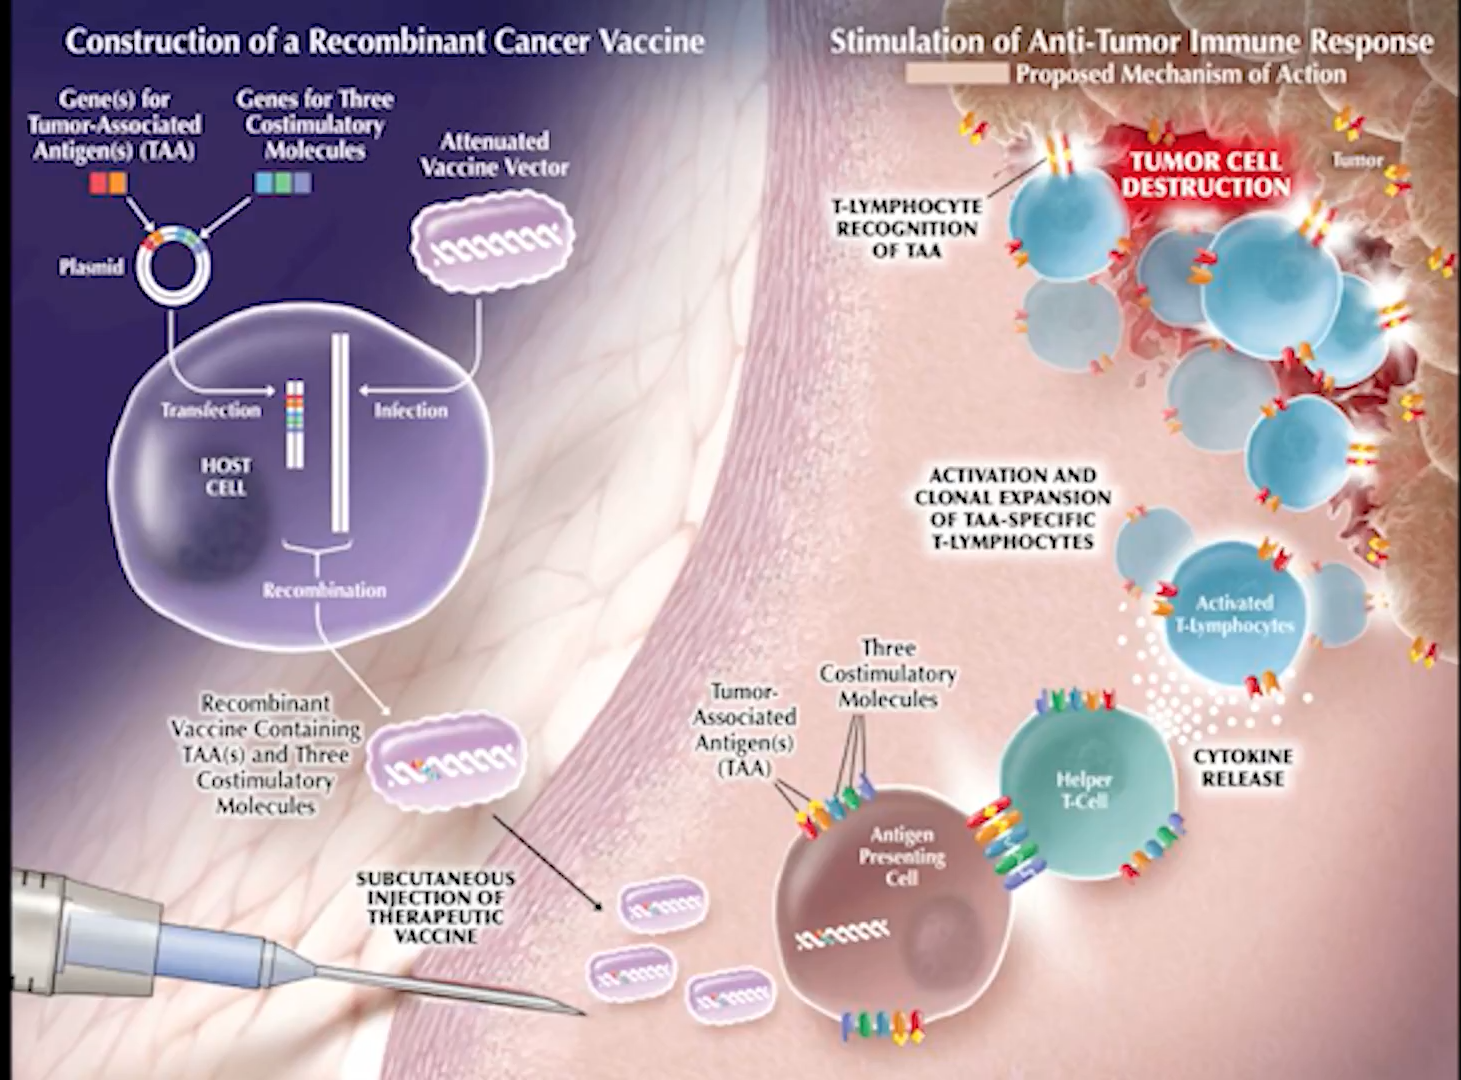 As an Illustration, this diagram shows the Immunotherapy for Prostate Cancer Process